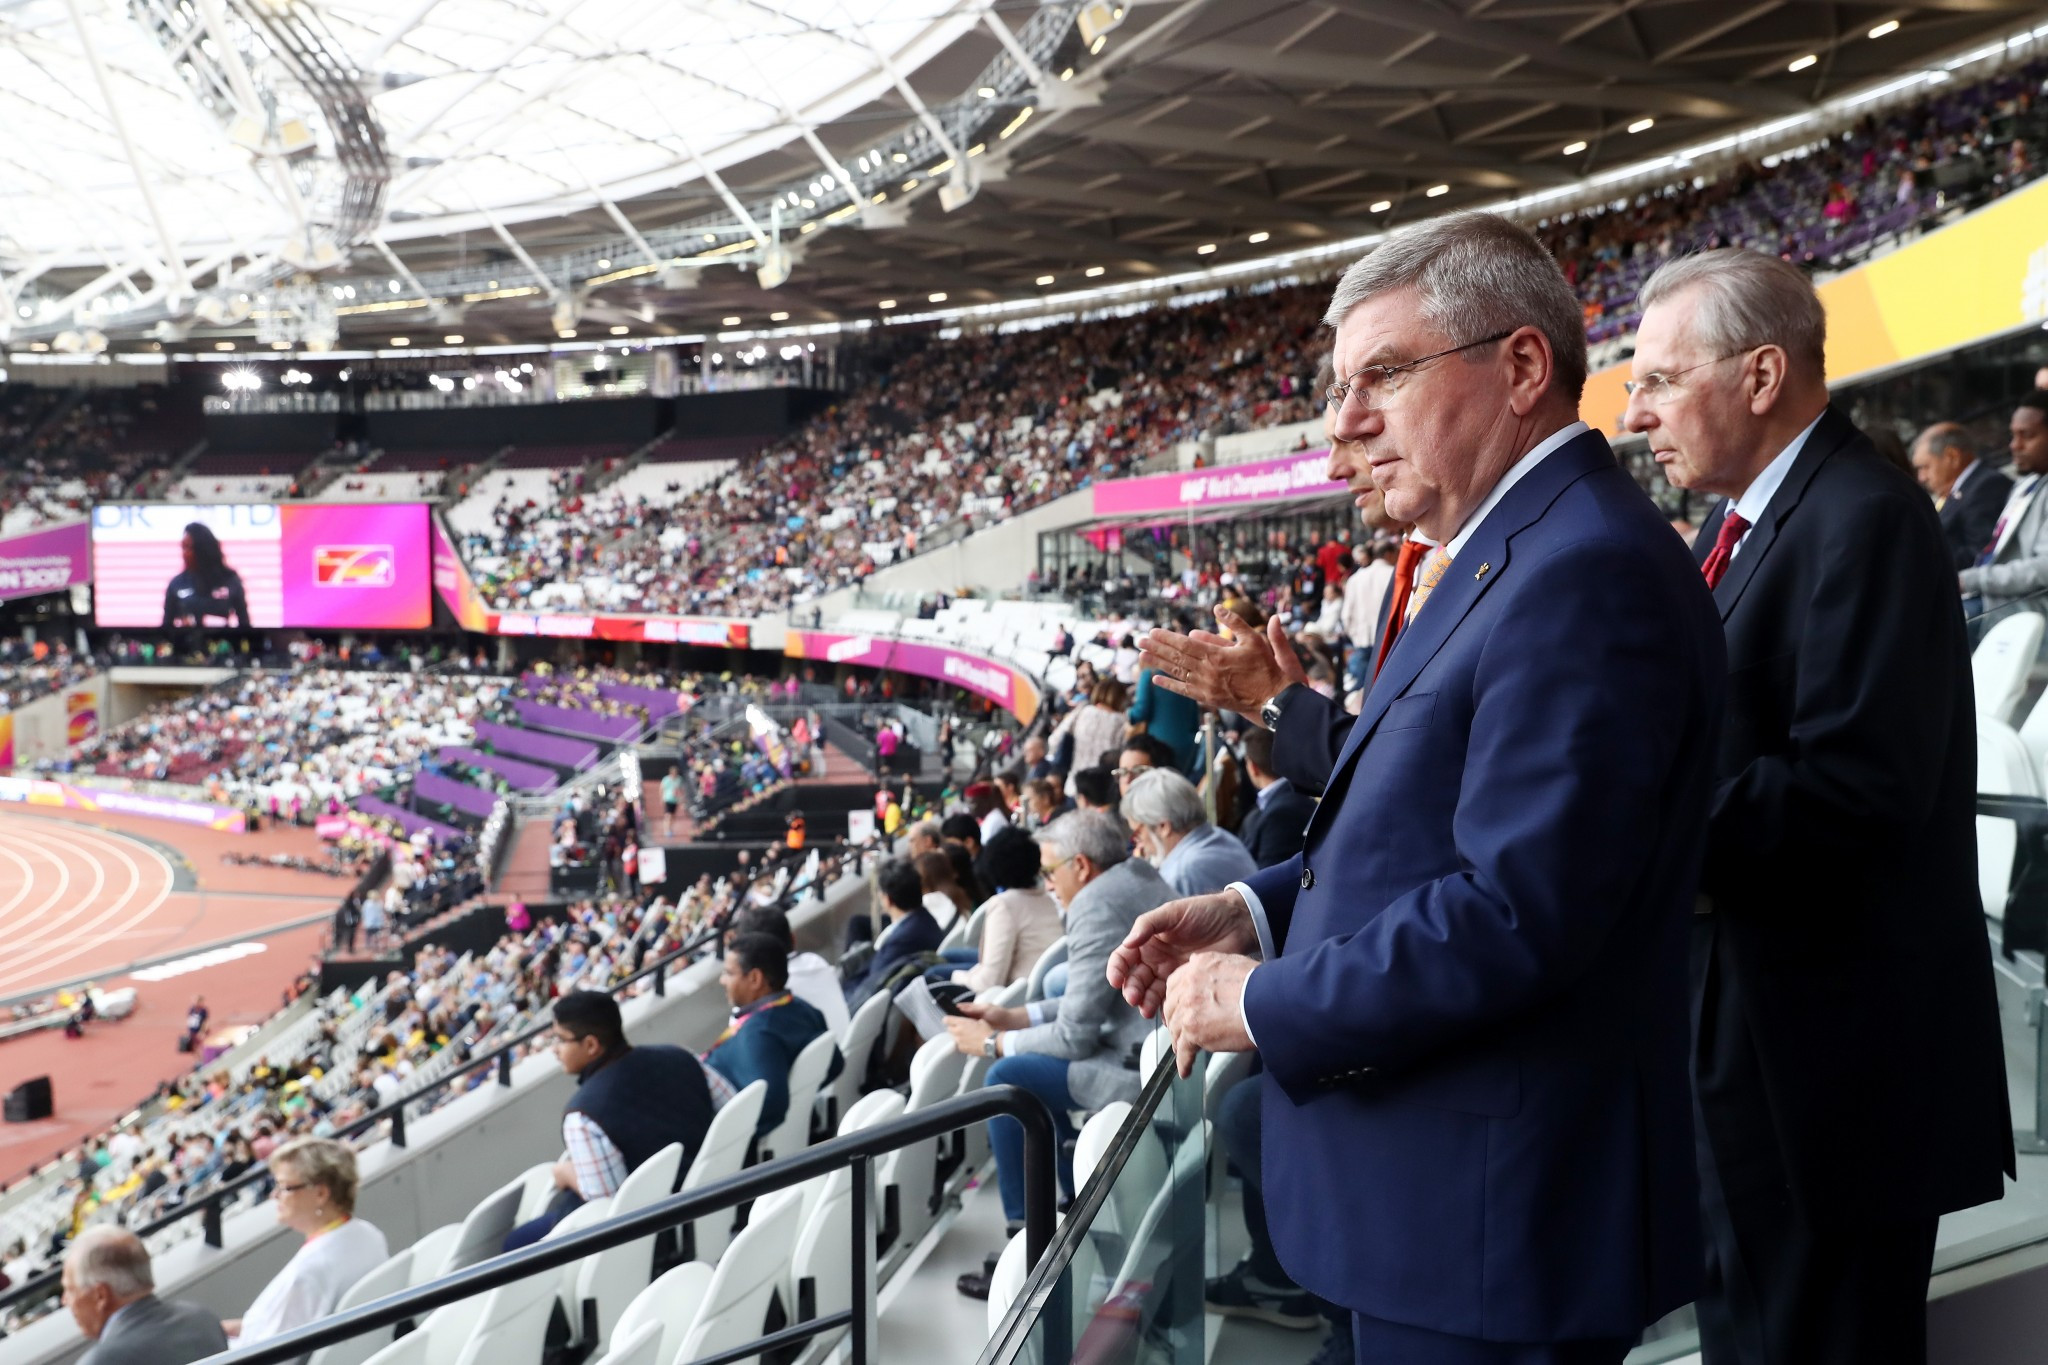 Past and present IOC Presidents Jacques Rogge, right, and Thomas Bach, watch the World Athletics Championships in London ©Getty Images